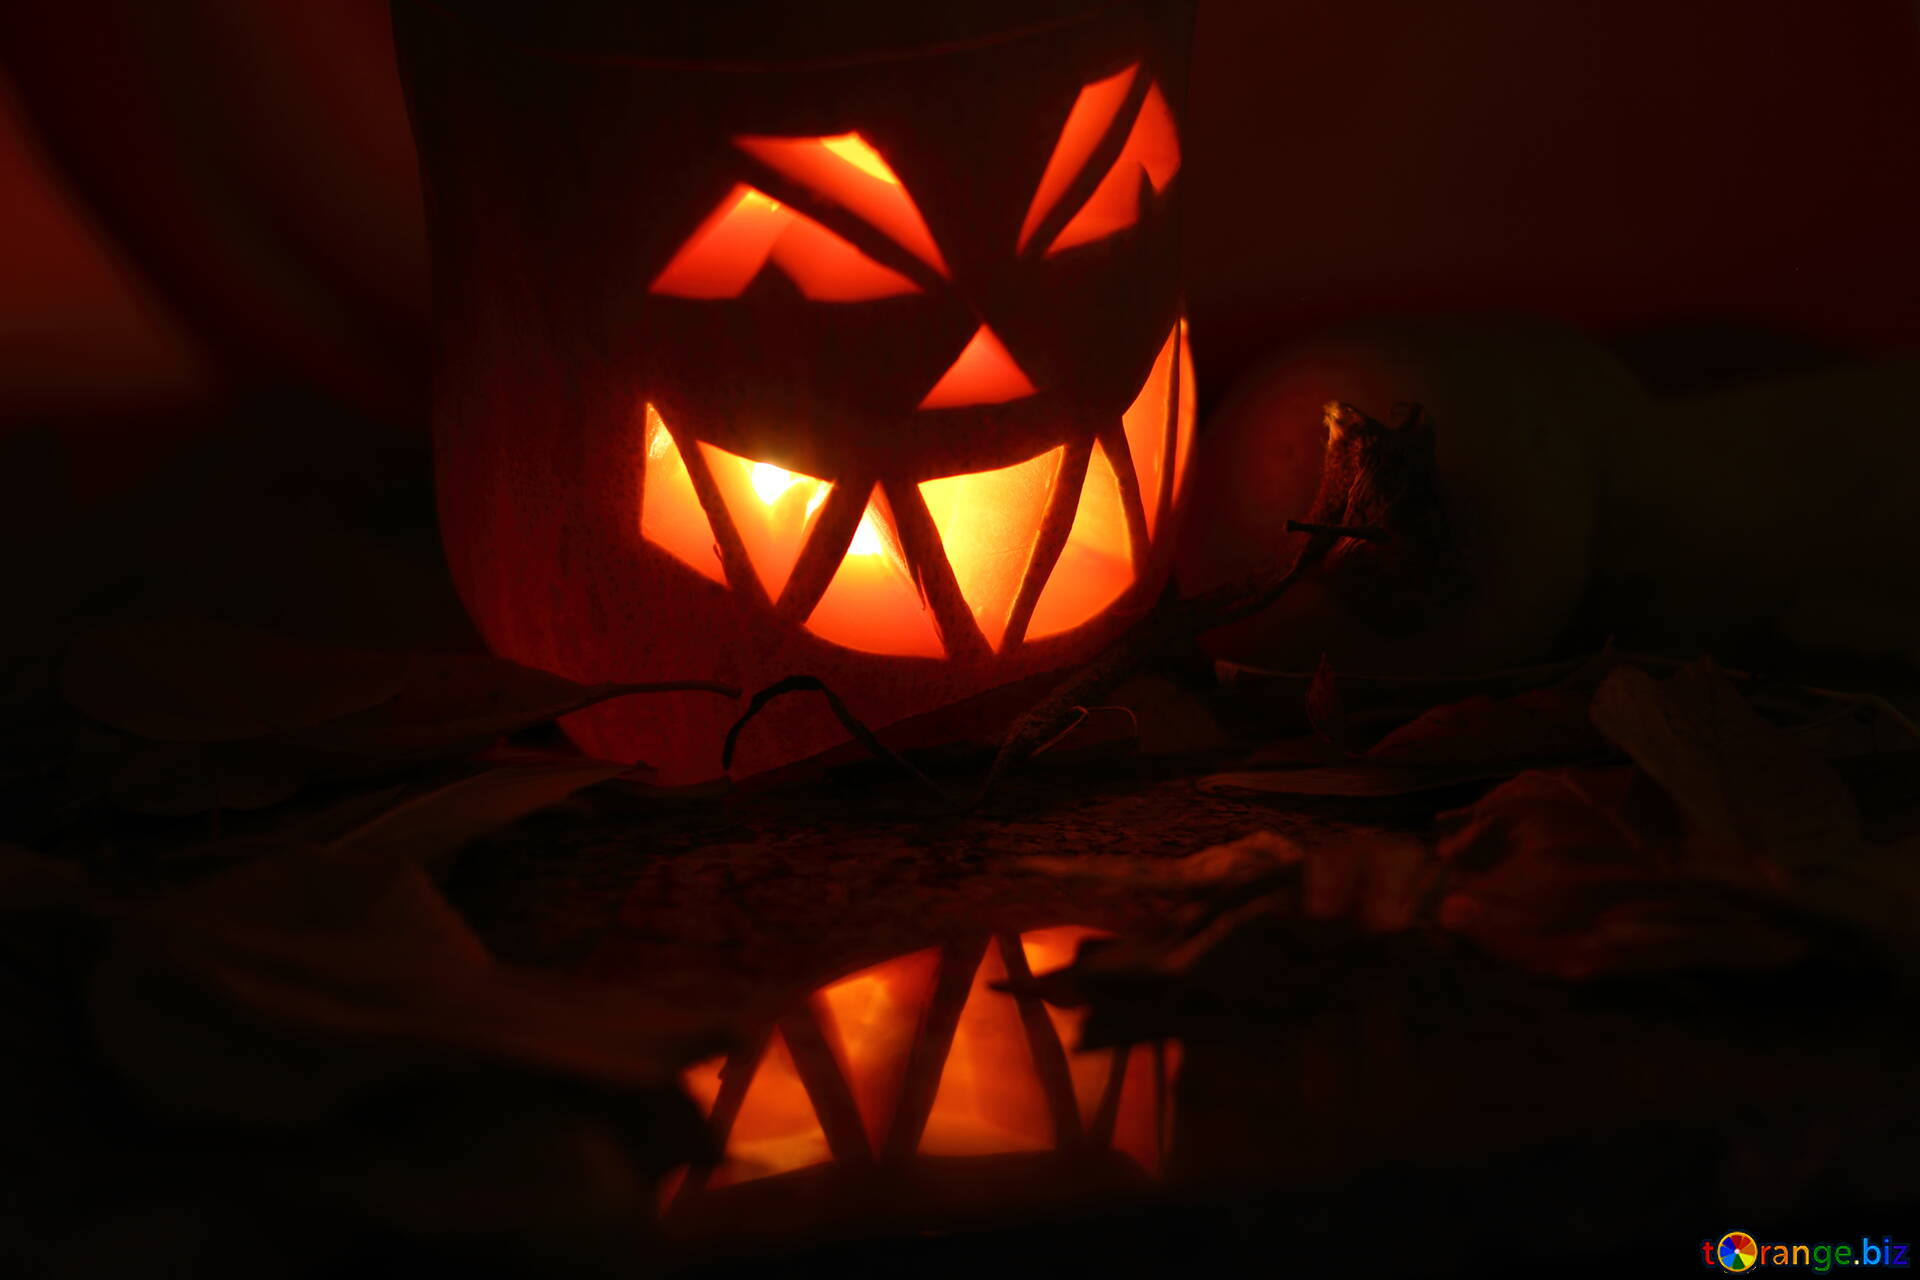 download free image scary halloween in hd wallpaper size 1920px